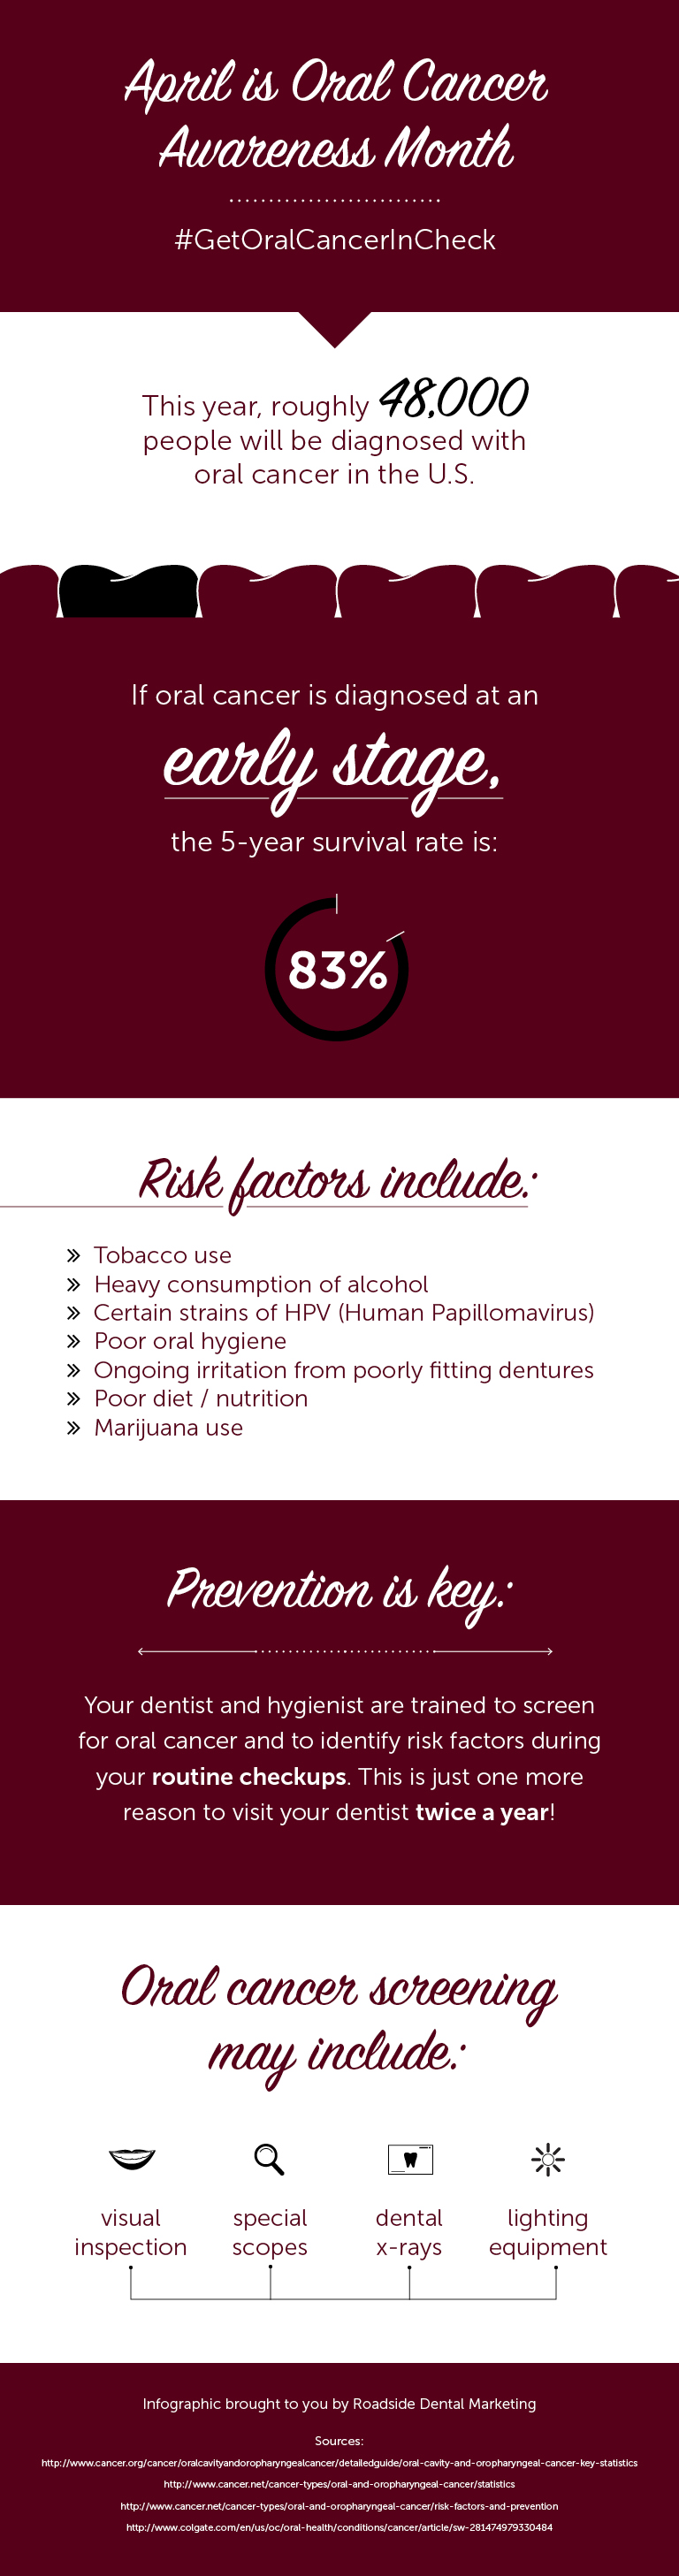 16041 Infographic - Oral Cancer Awareness